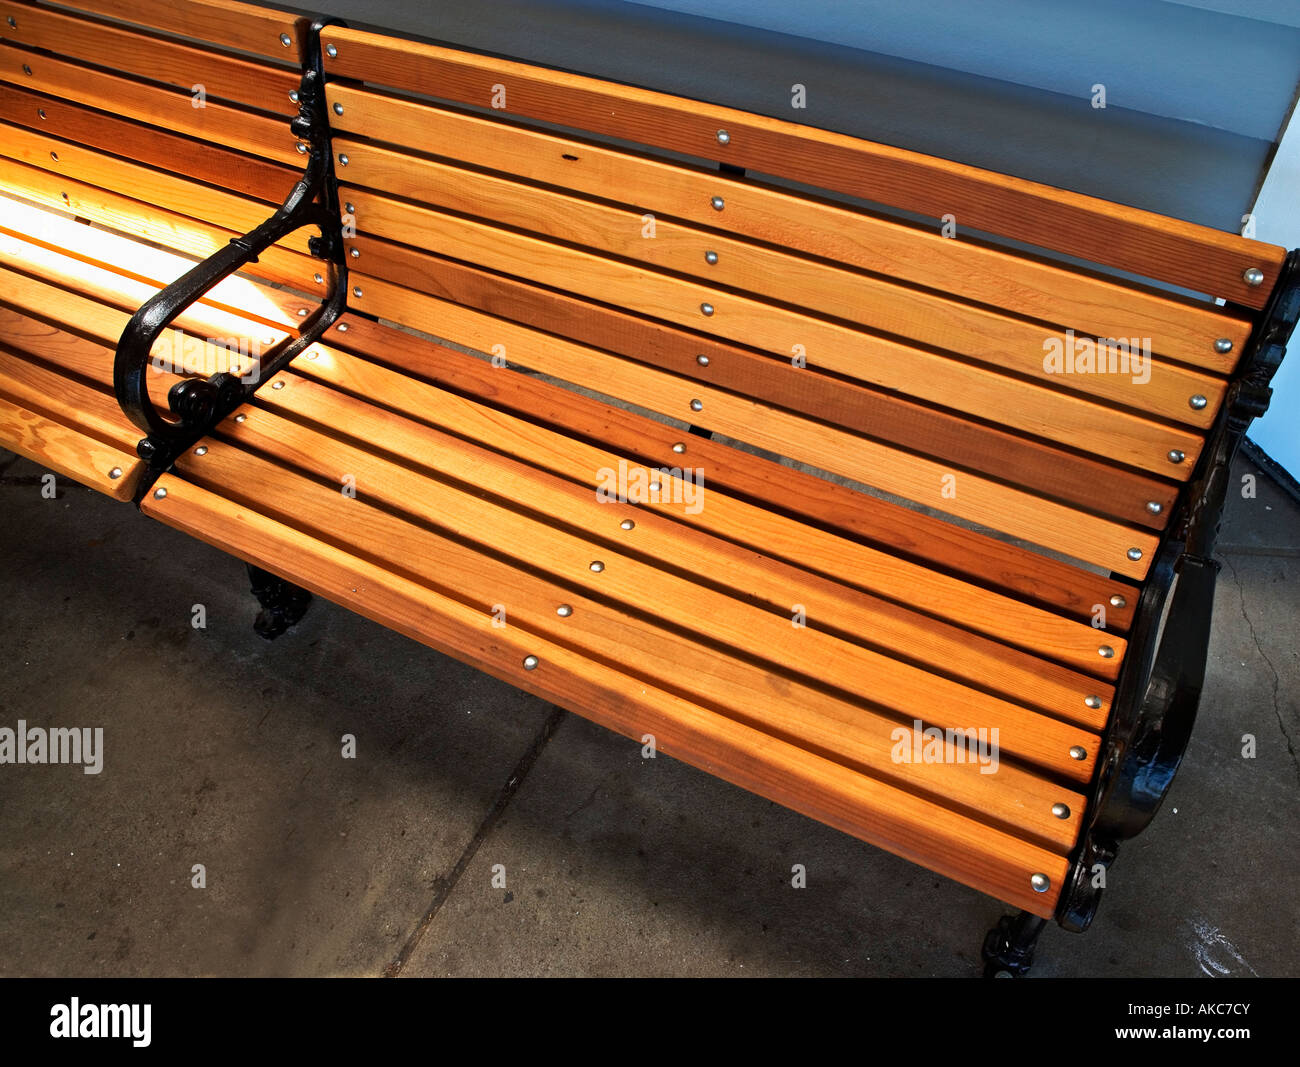 Bench Park Bench Slats Wooden Wood Seating Seat Stock Photo